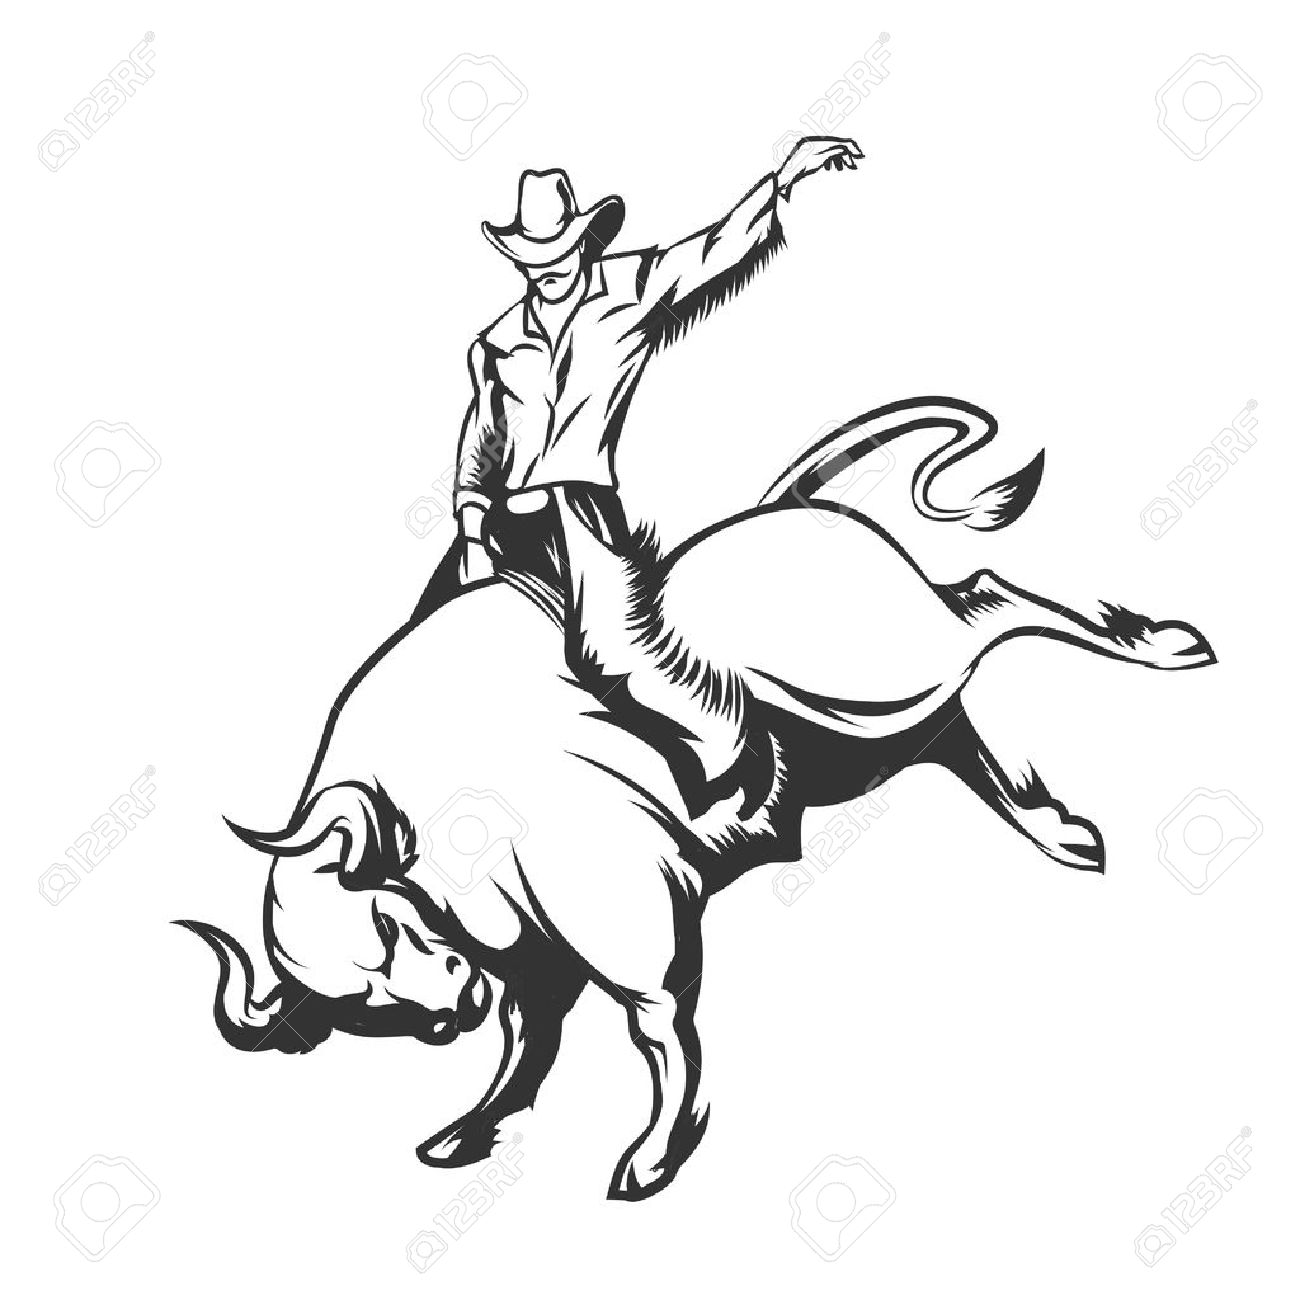 1300x1300 Bull Stock Photos. Royalty Free Business Images